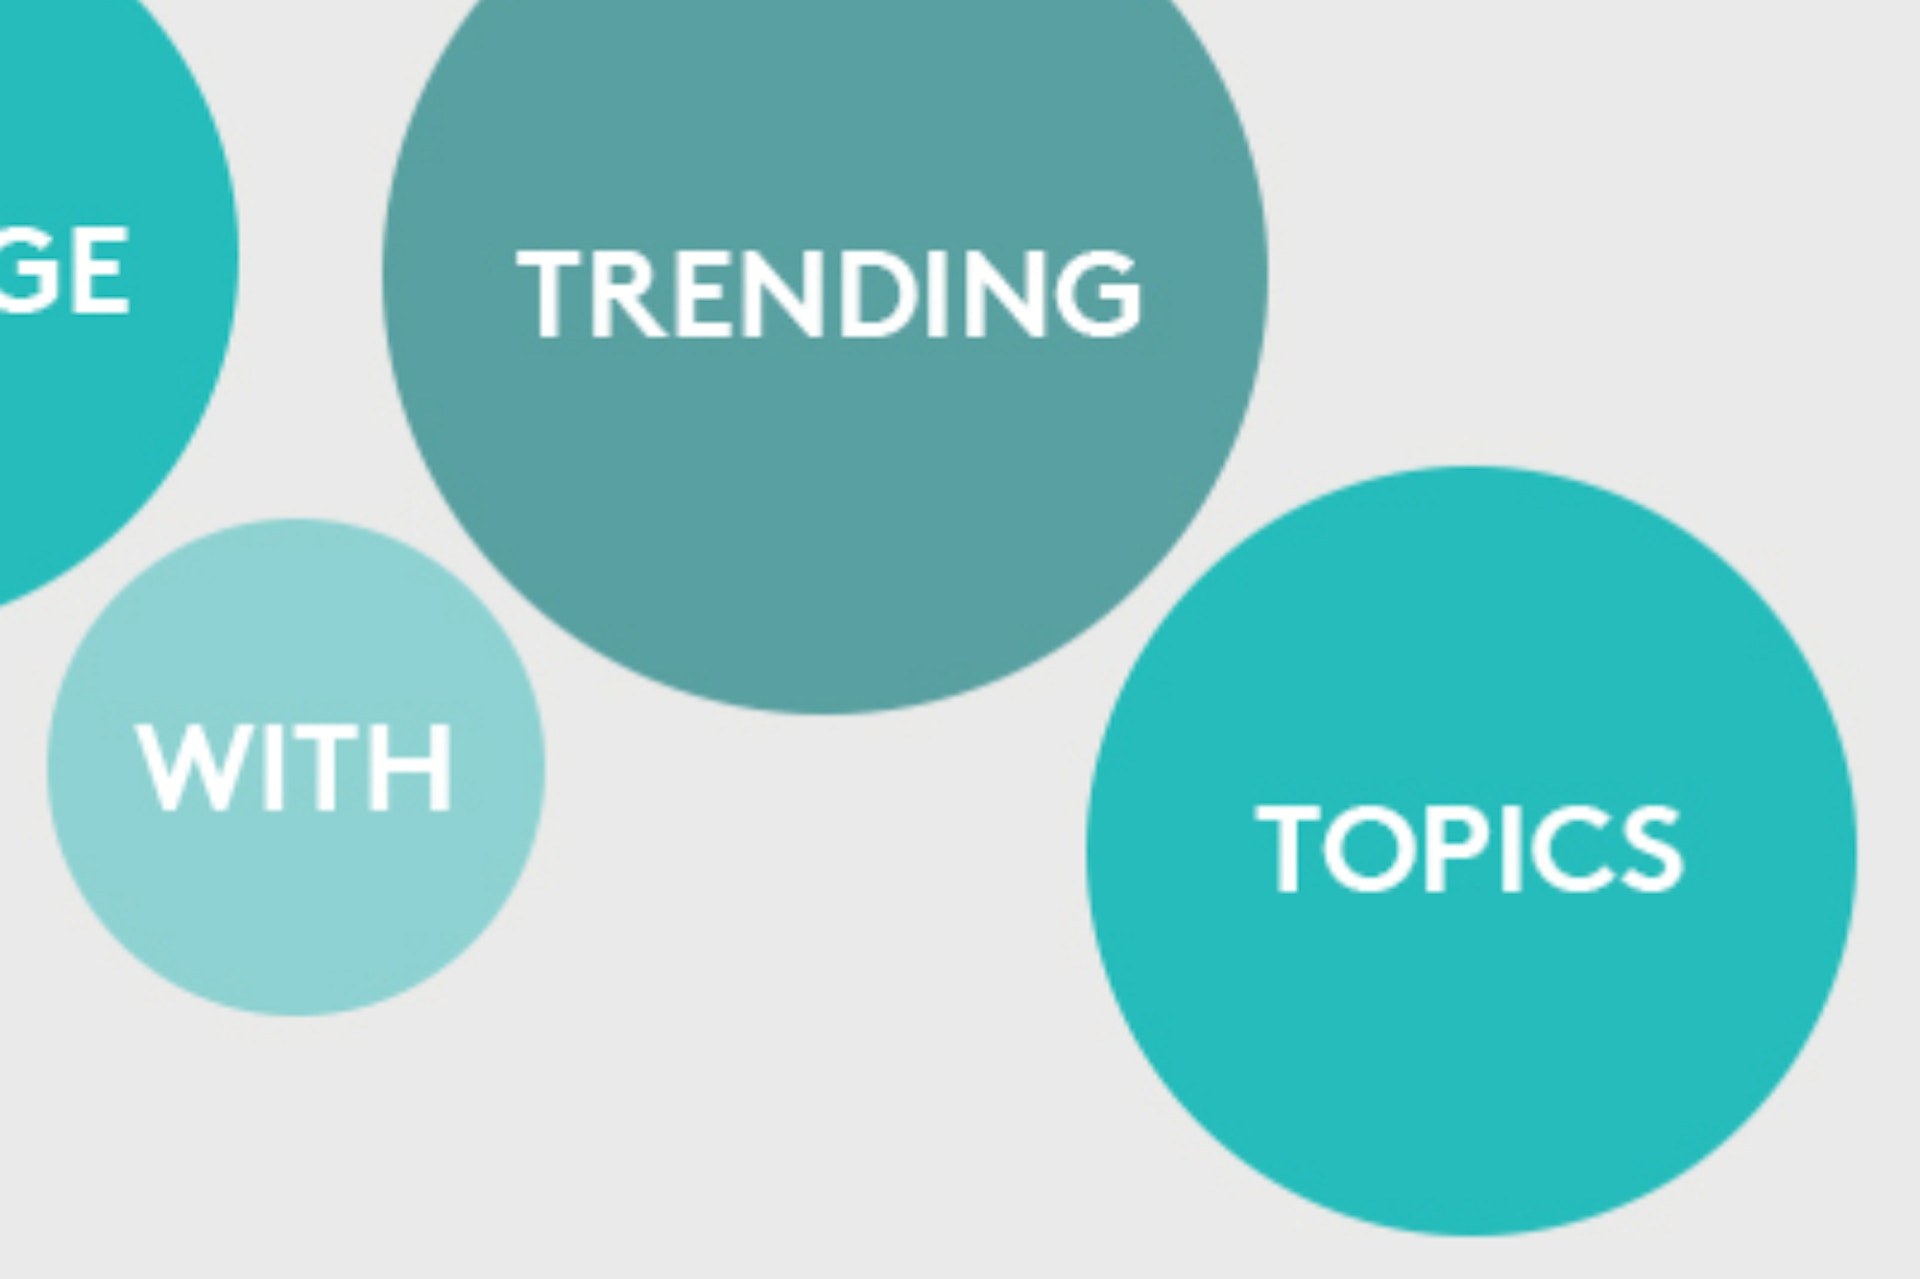 """Three blue circles with one word in each - with, trending and topics""""."""